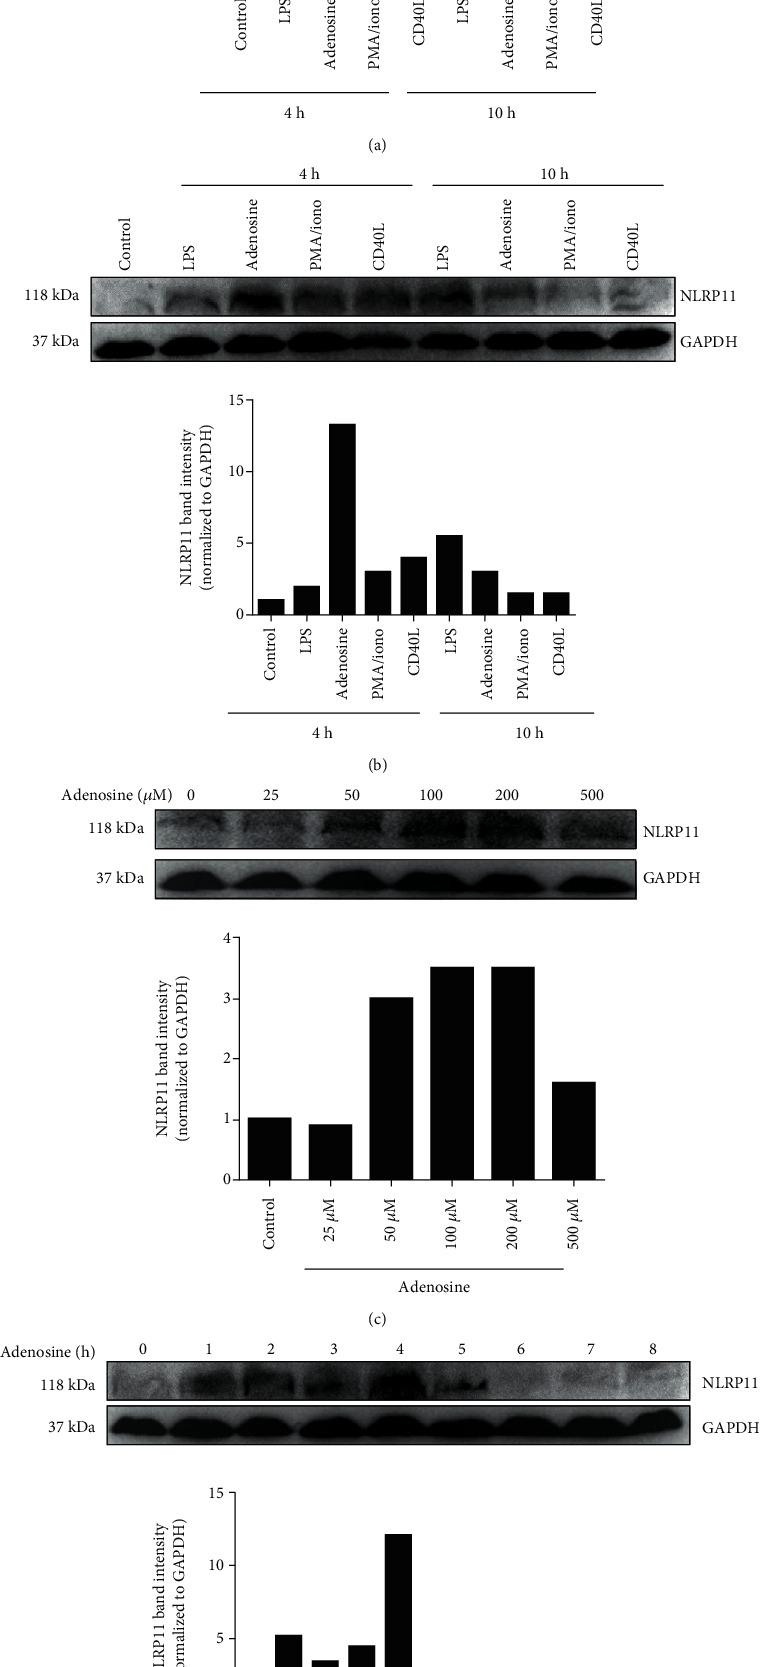 Adenosine treatment induced NLRP11 expression at both the mRNA and protein levels in B lymphoblasts. (a) NLRP11 mRNA expression after 4 and 10 hours of stimulation with PMA/ionomycin (50 ng/500 ng/ml), CD40L (1 μ /ml), LPS (100 ng/ml), and adenosine (50 μ M) ( ∗ indicates significance at P